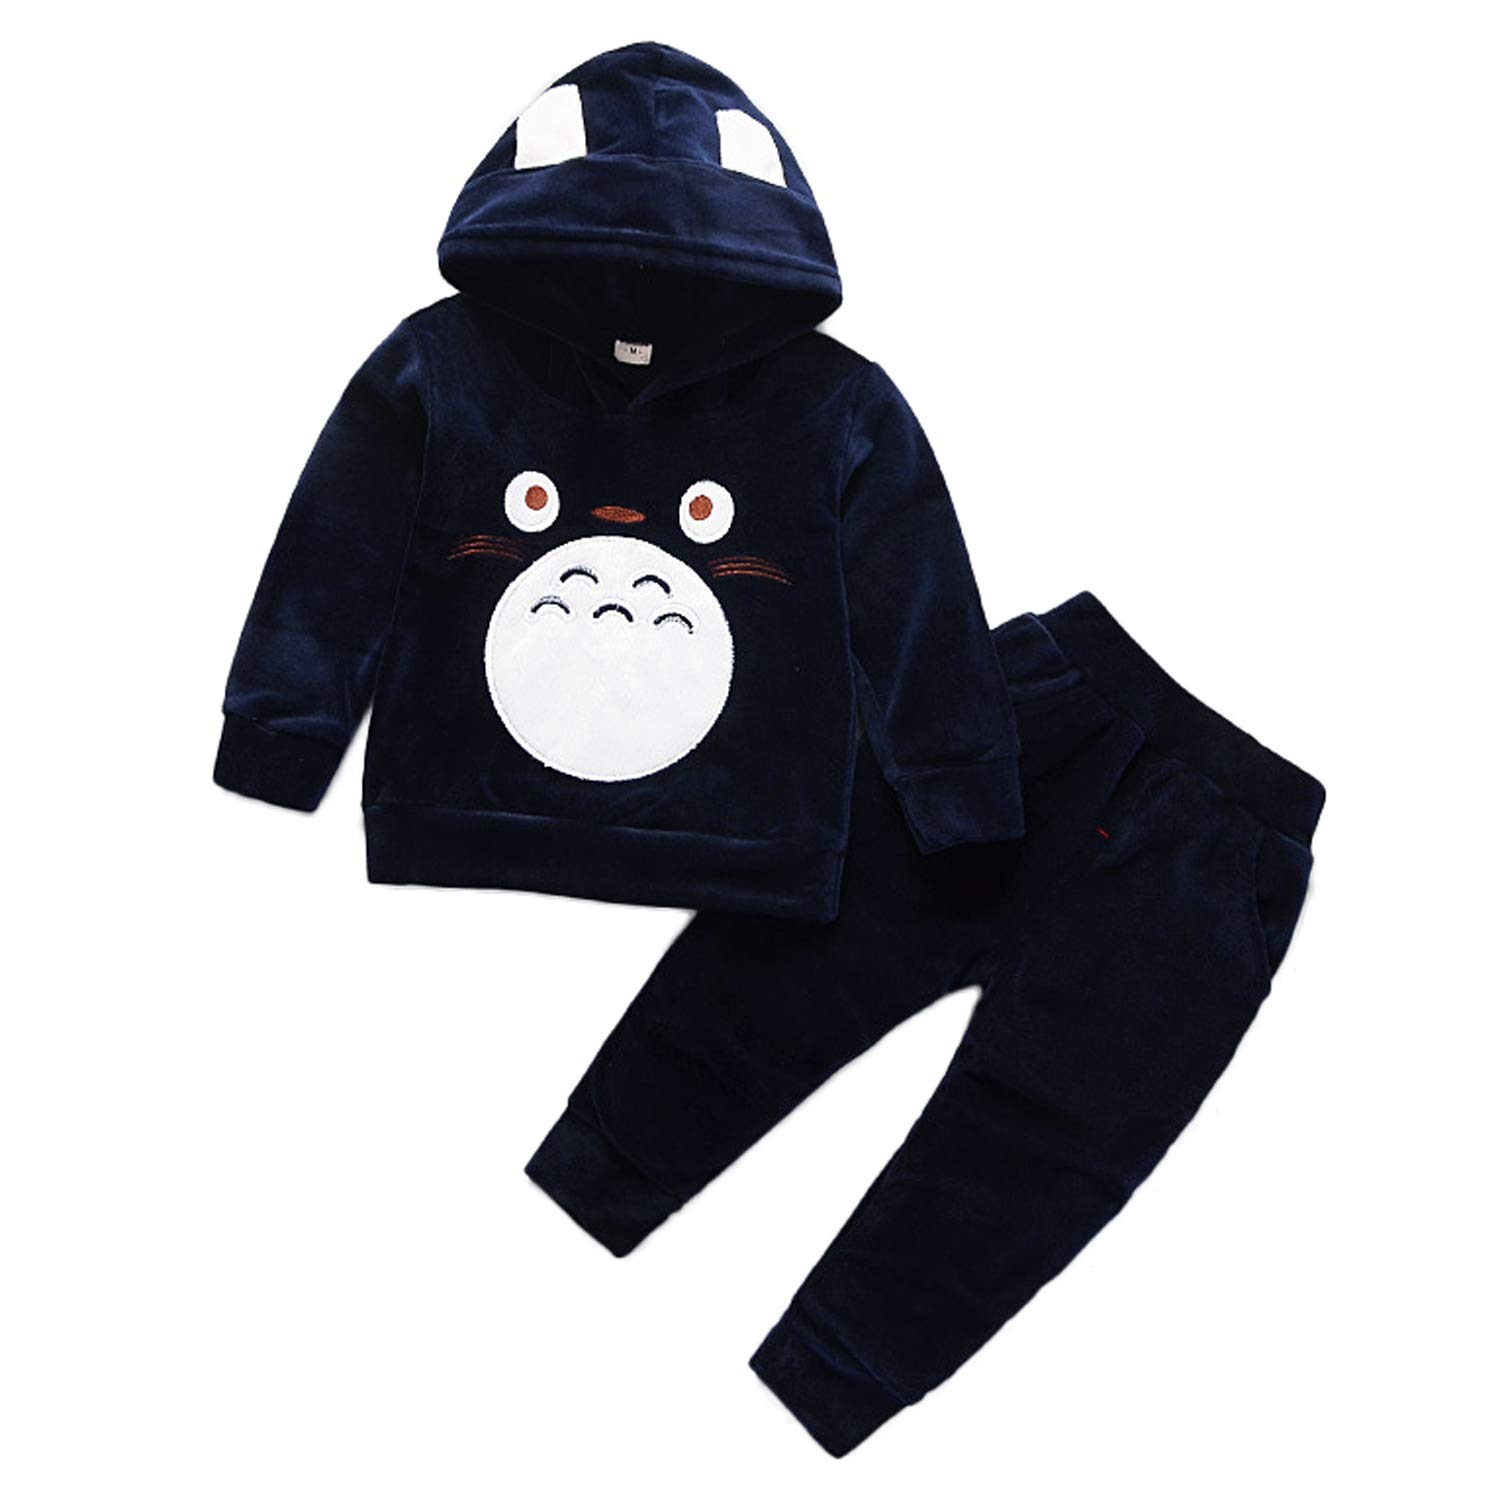 Baby Totoro Clothes Set Velvet Hooded Sweatshirt with Pants for Boys Girls Bangtan Boys